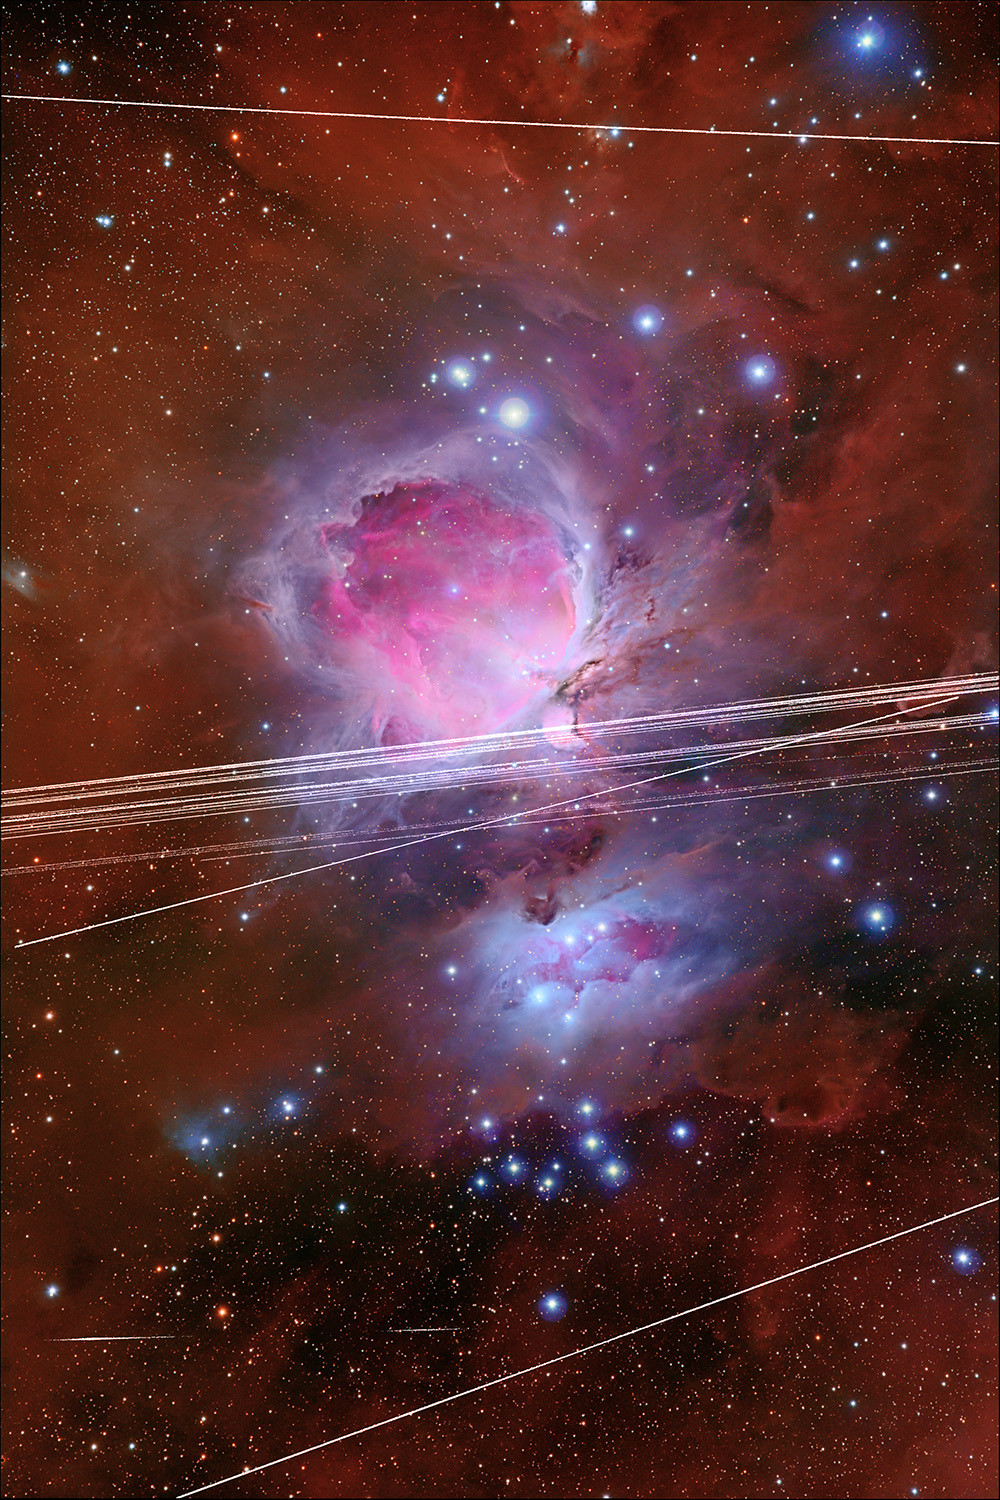 The Orion Nebula, crisscrossed with satellite streaks.